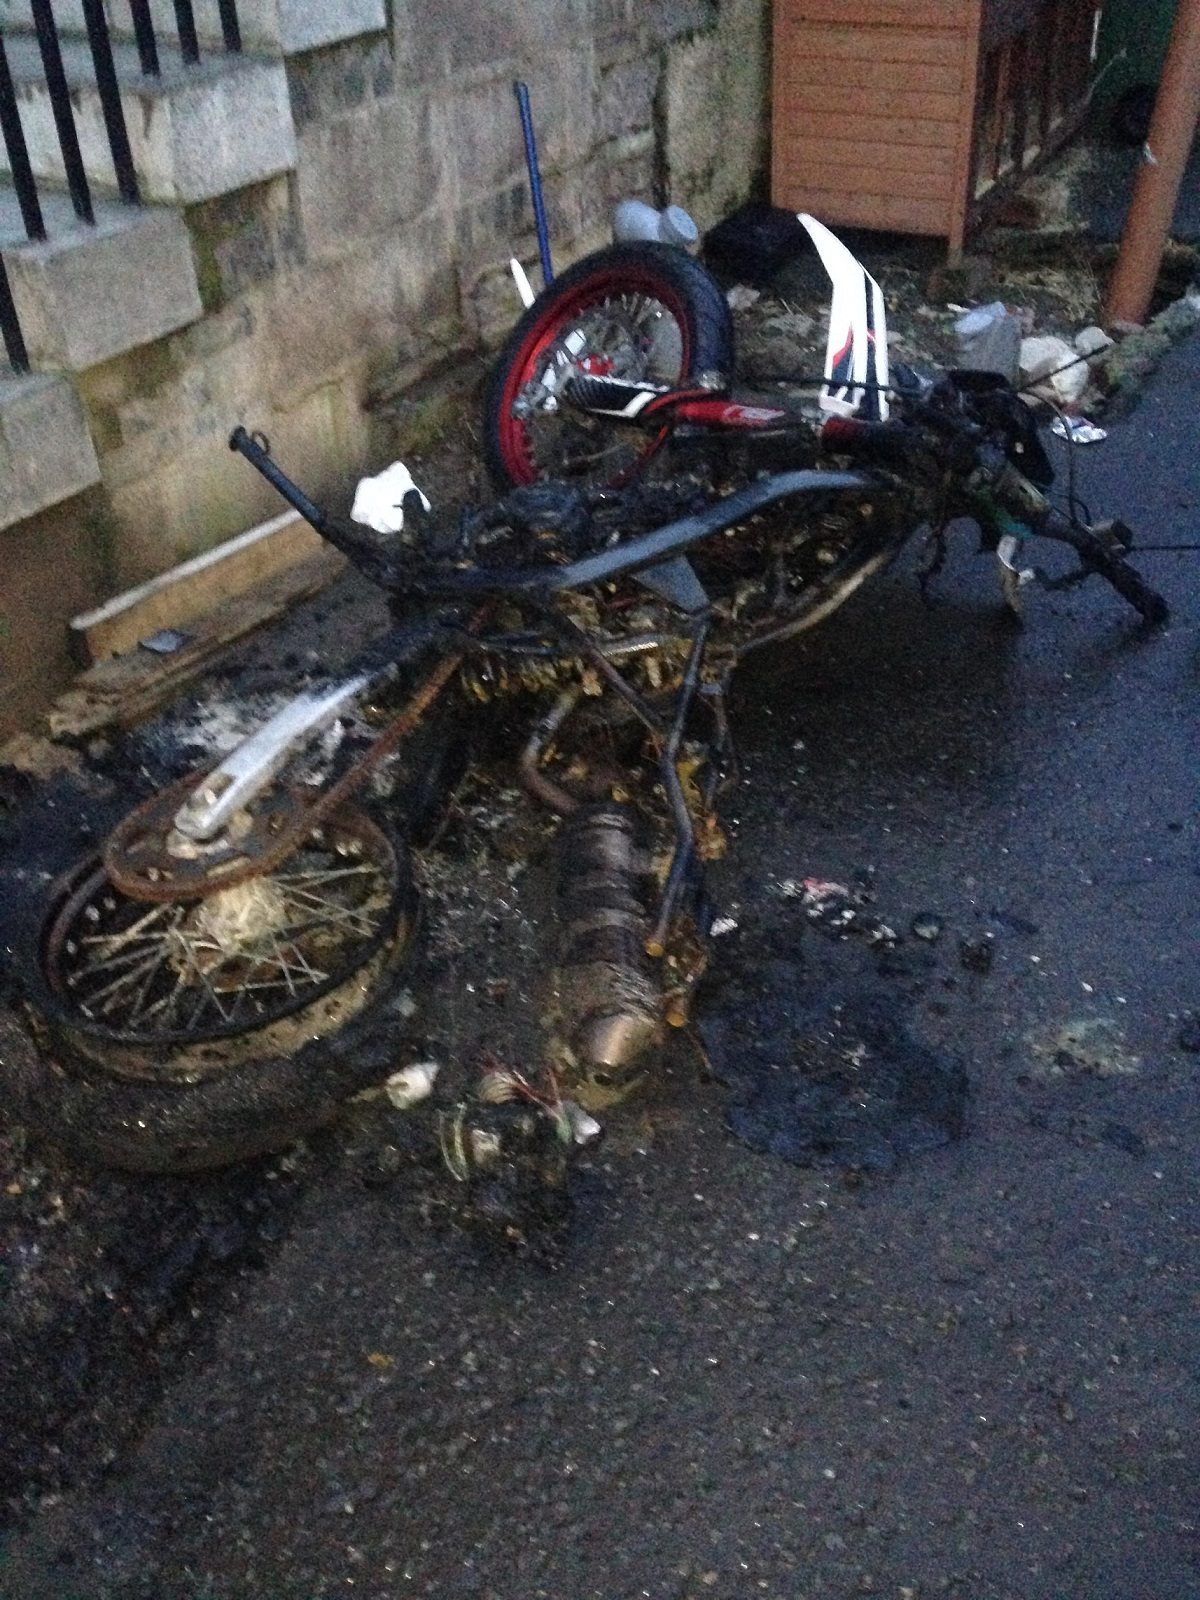 The badly damaged bike lies charred just a few feet from the pet enclosure